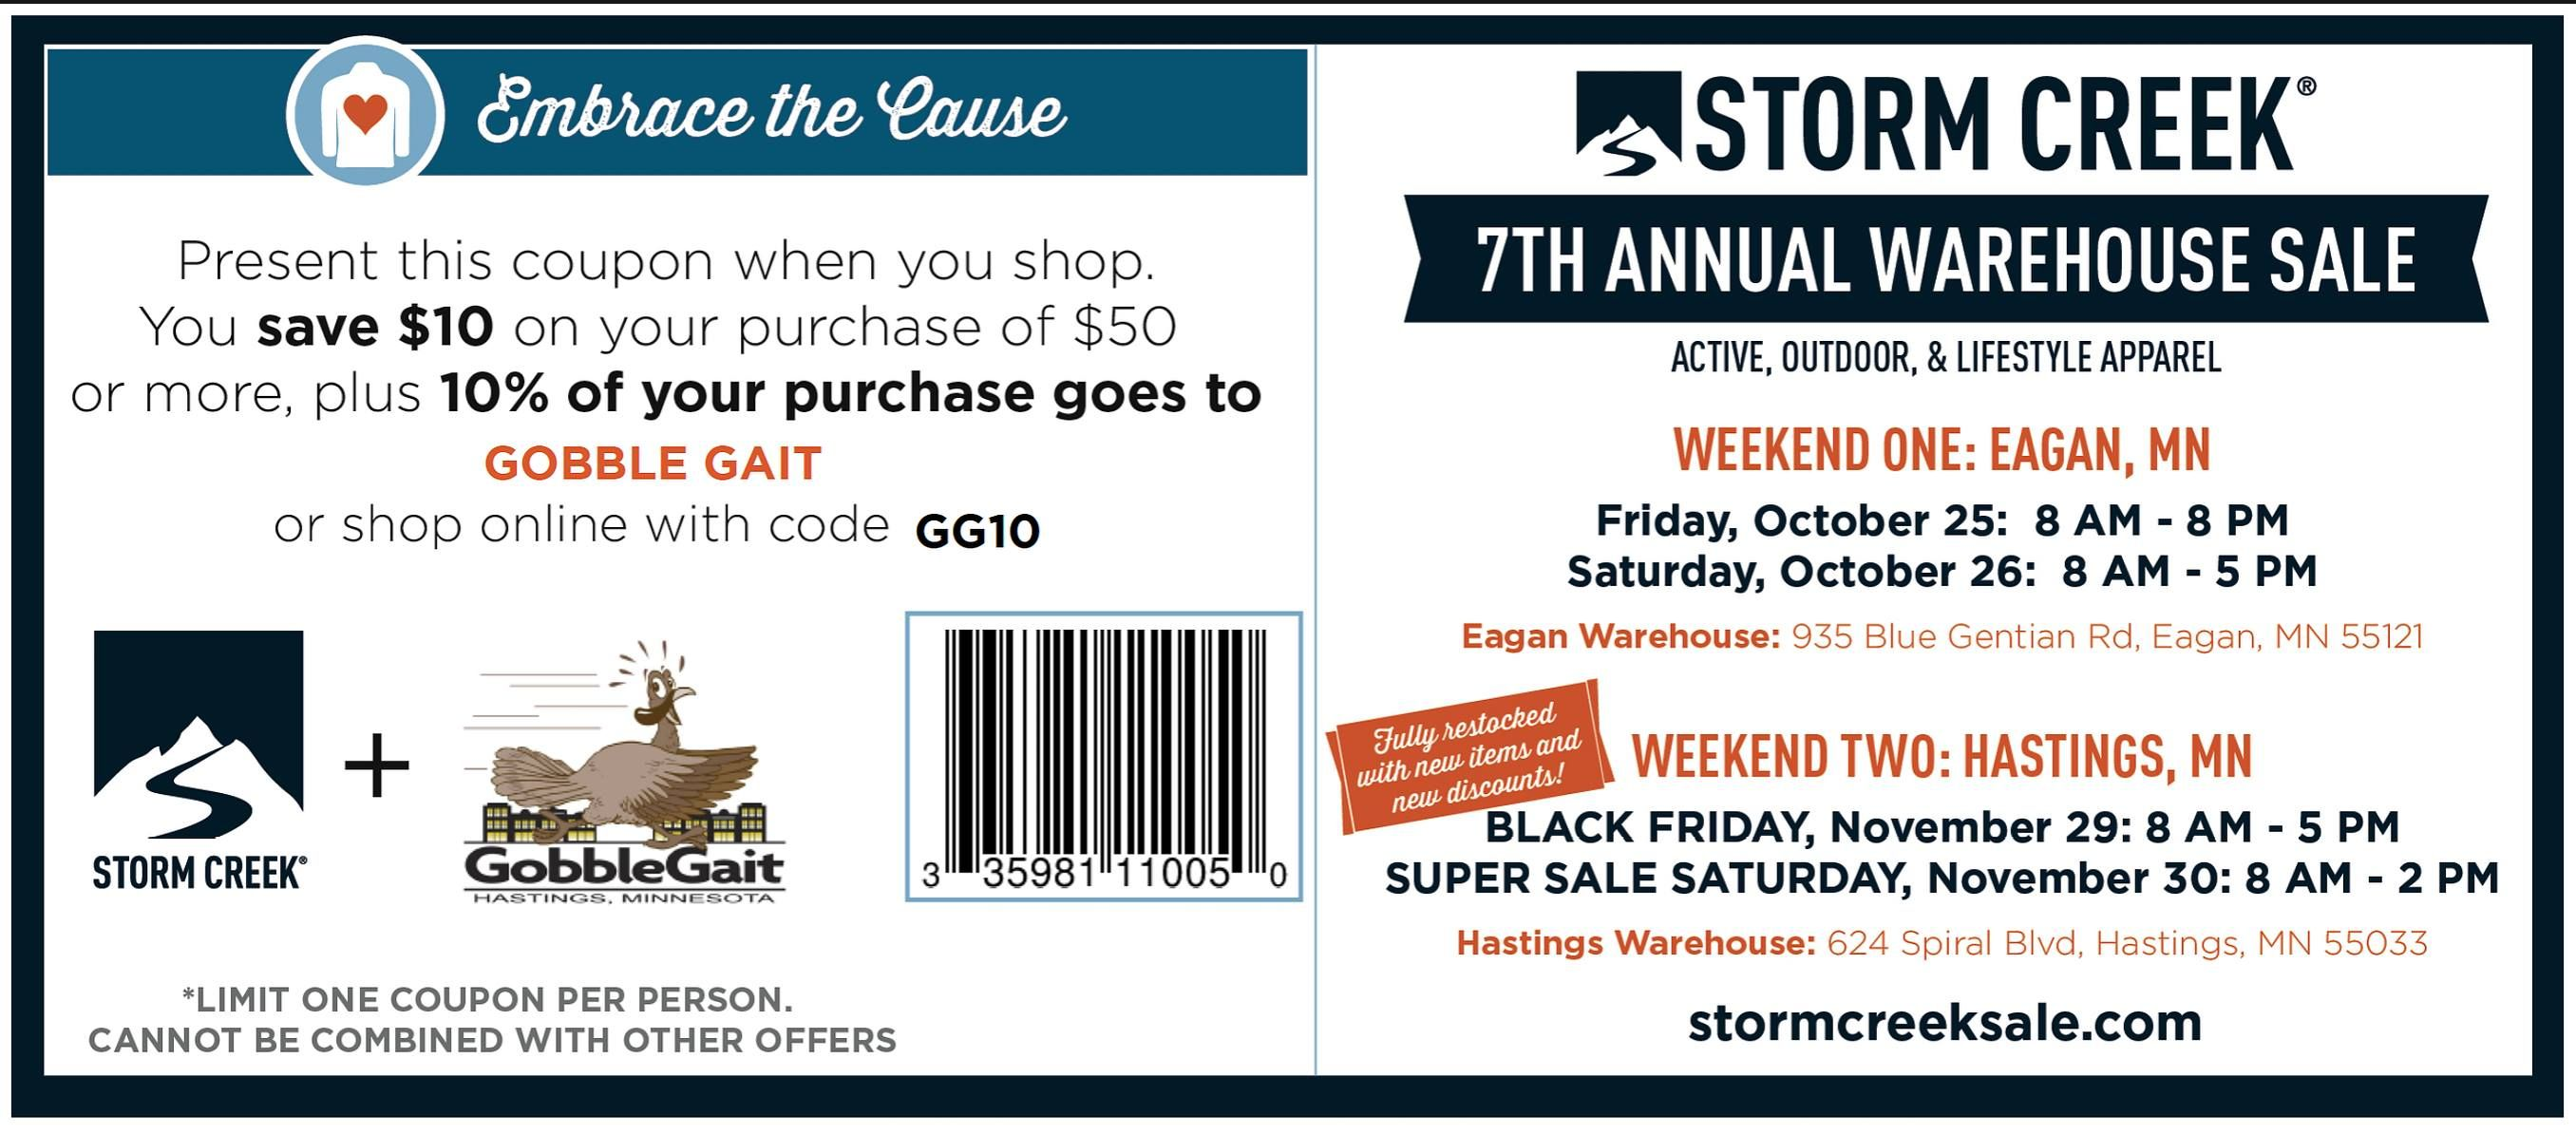 Storm Creek Friends of Gobble Gait Sale